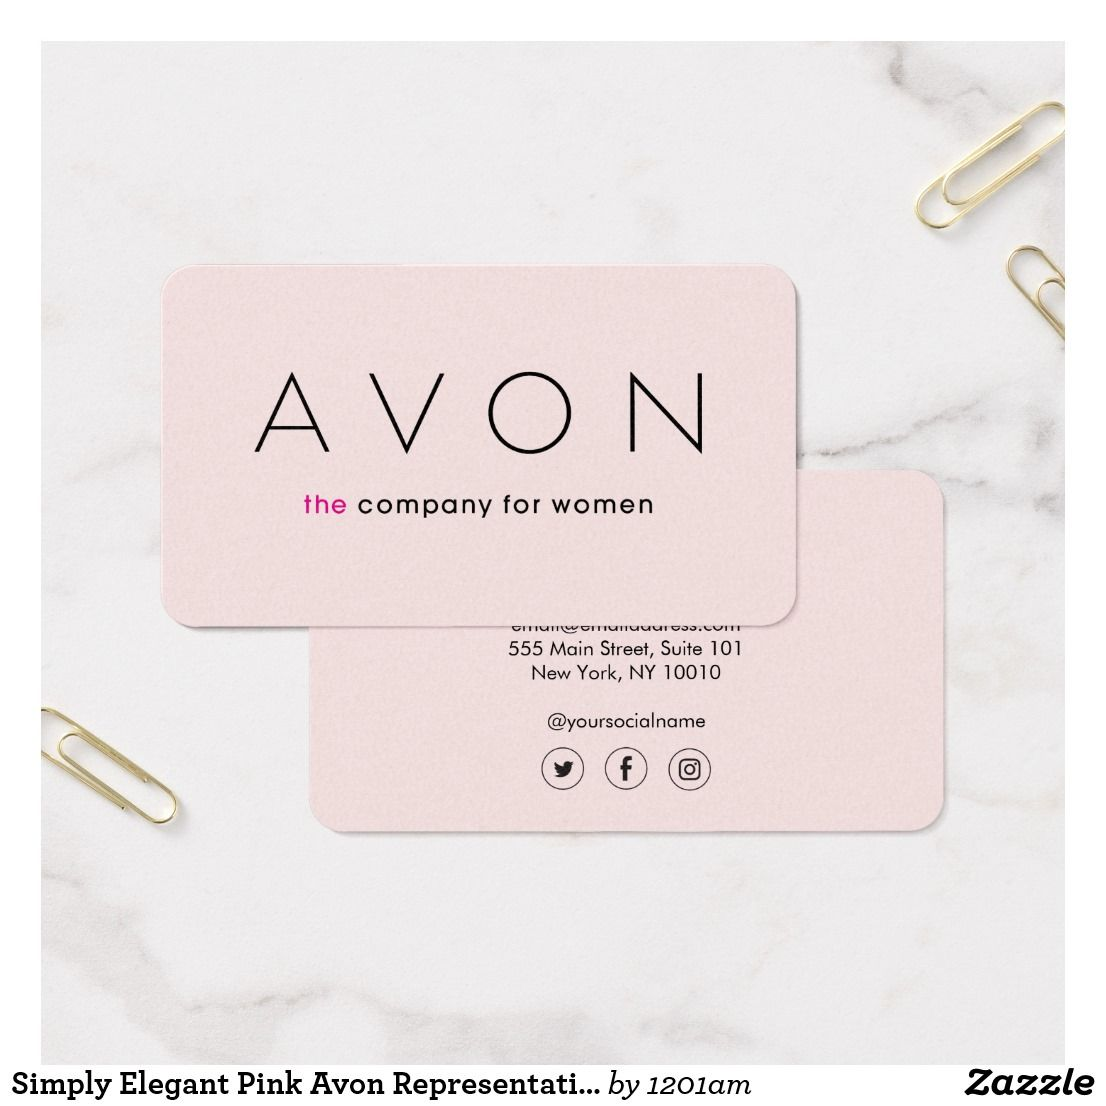 Simply Elegant Pink Avon Representative Business Card | Business cards